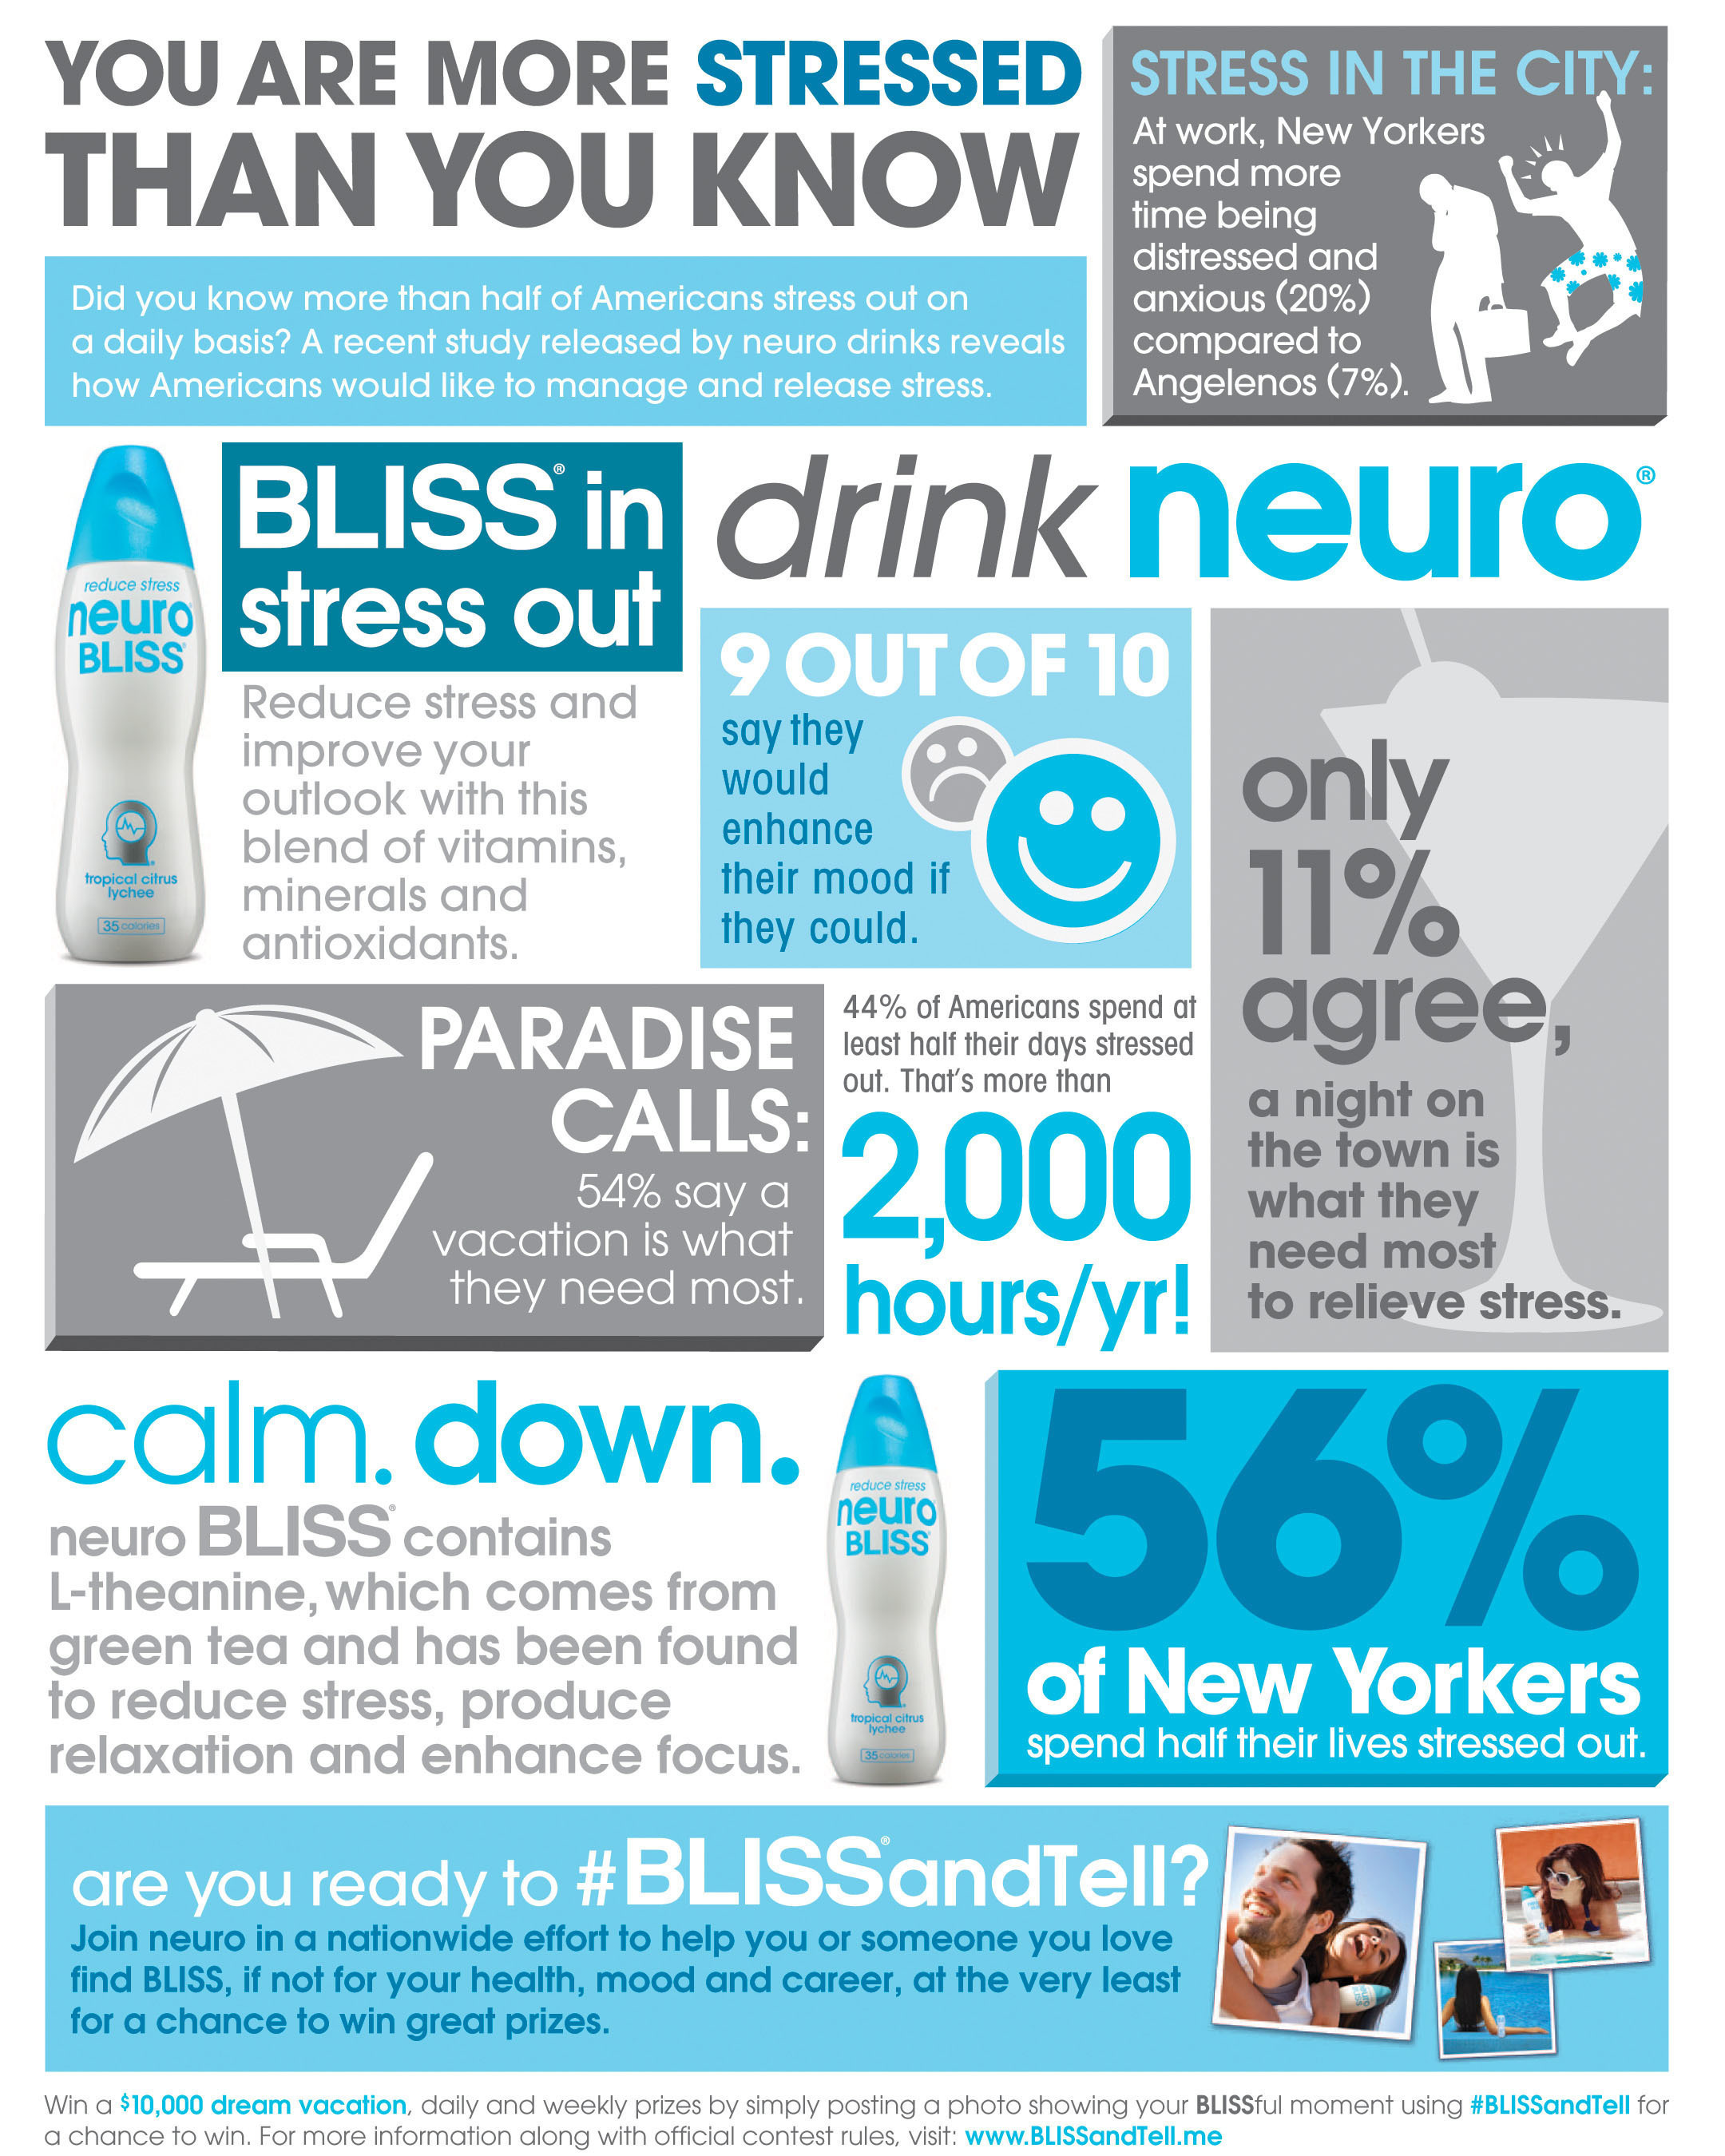 neuro survey reveals Americans spend more time stressed than happy or productive, and launches a nationwide summer campaign to encourage consumers to stop, take time to relax and share their blissful moments for a chance to win a $10,000 vacation getaway. To be eligible, simply submit photos of your BLISSful moments on Twitter or Instagram using the hashtag #BLISSandTell. For more information, please visit www.BLISSandTell.me.  (PRNewsFoto/neuro)